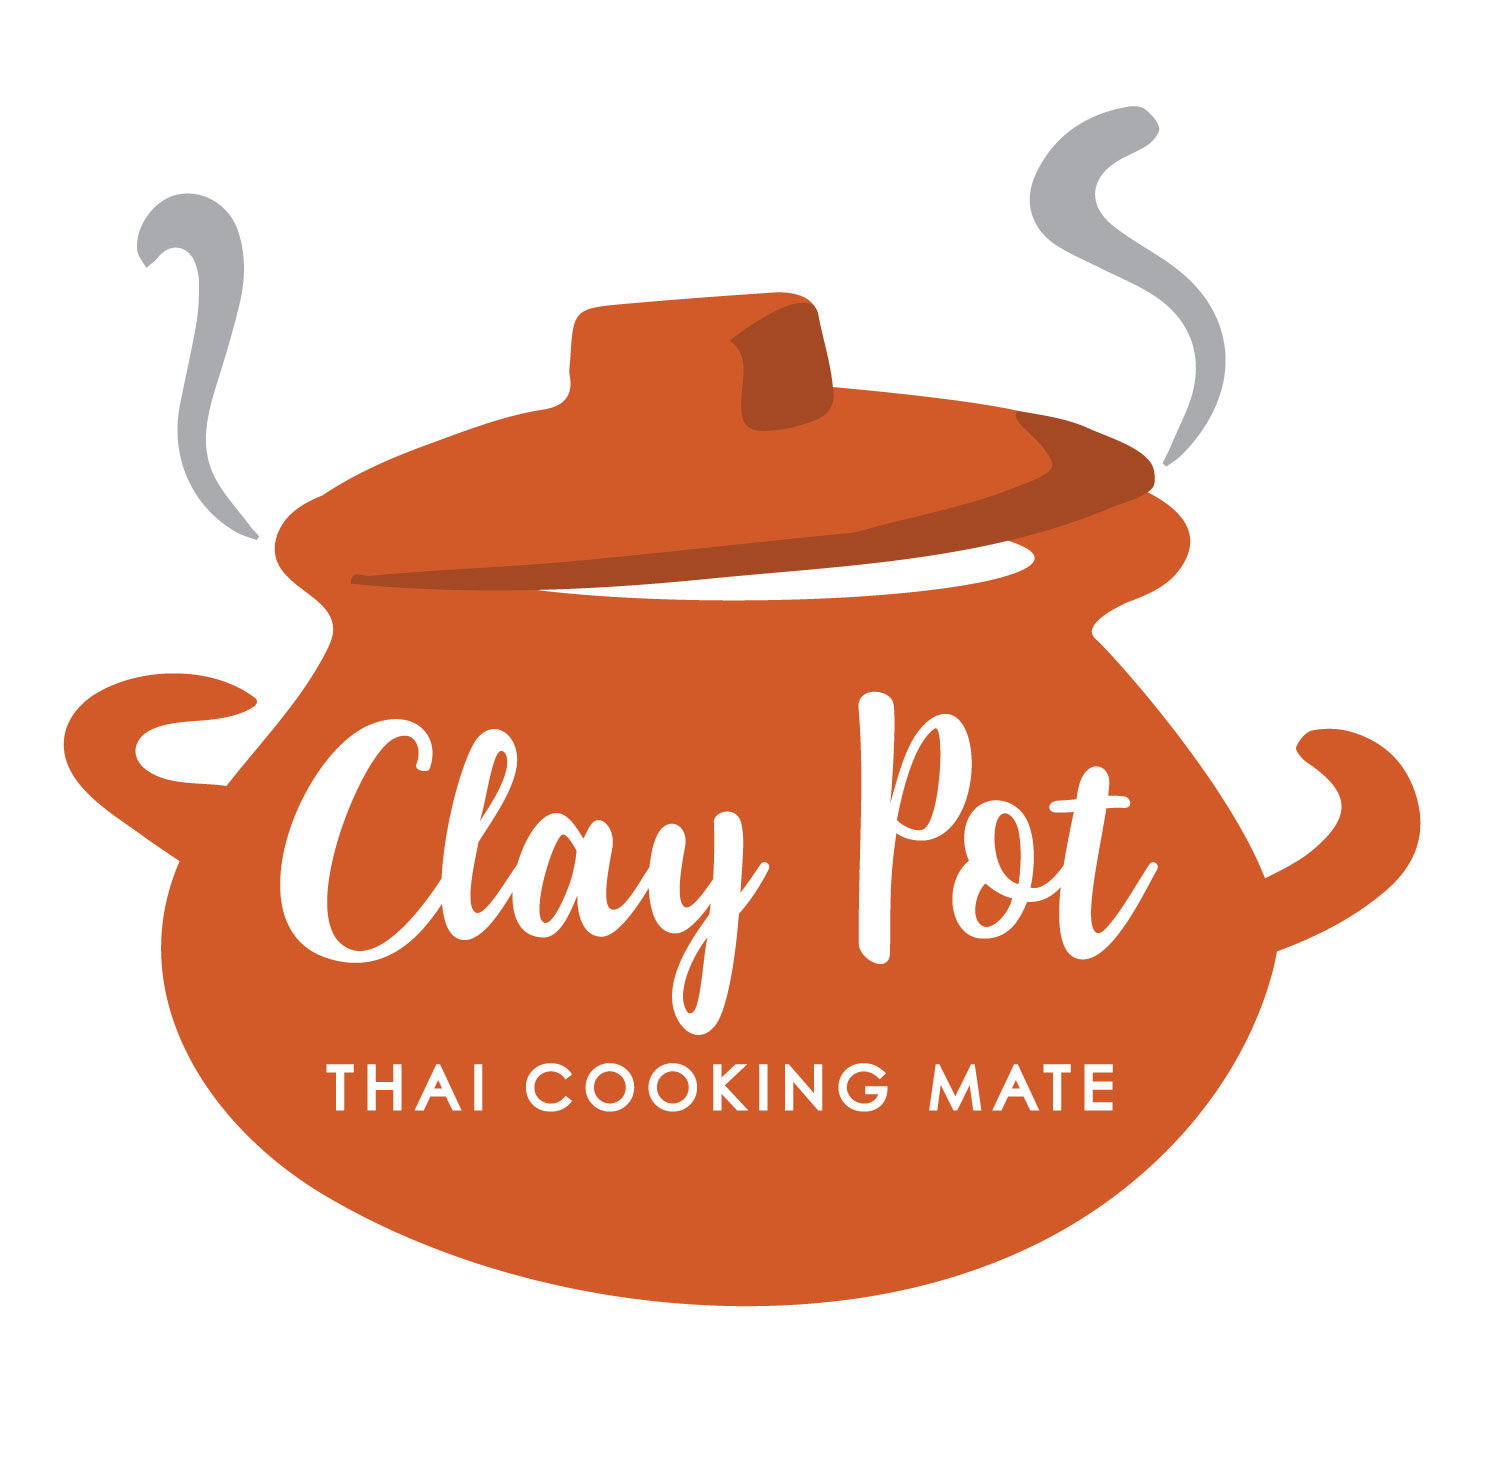 Clay Pot Thai Cooking Mate logo